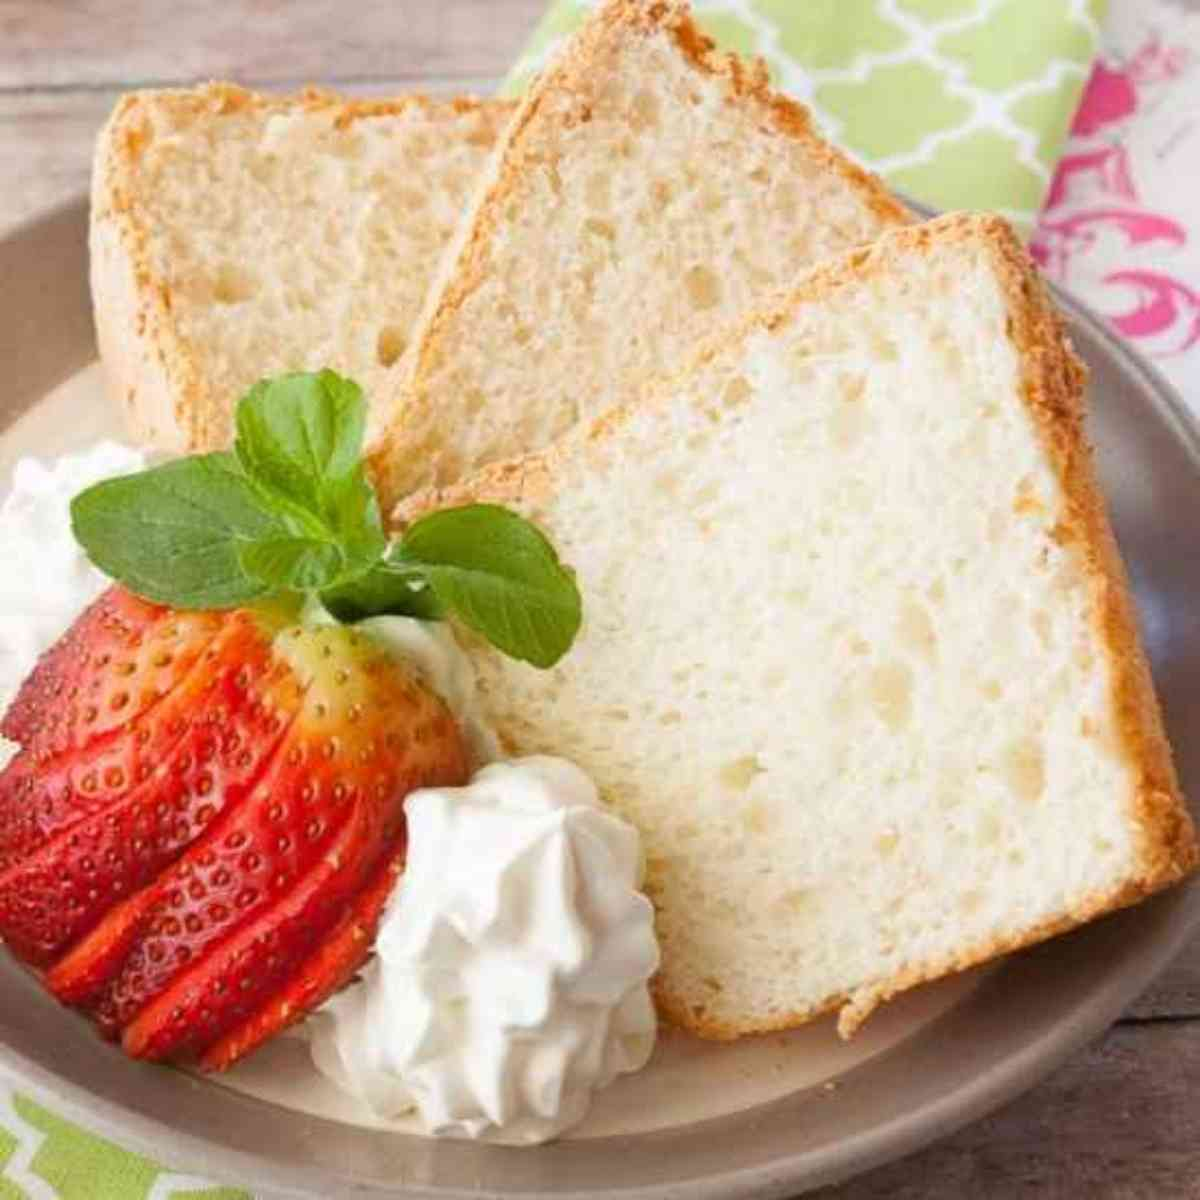 Three slices of angel food cake with fresh strawberries.